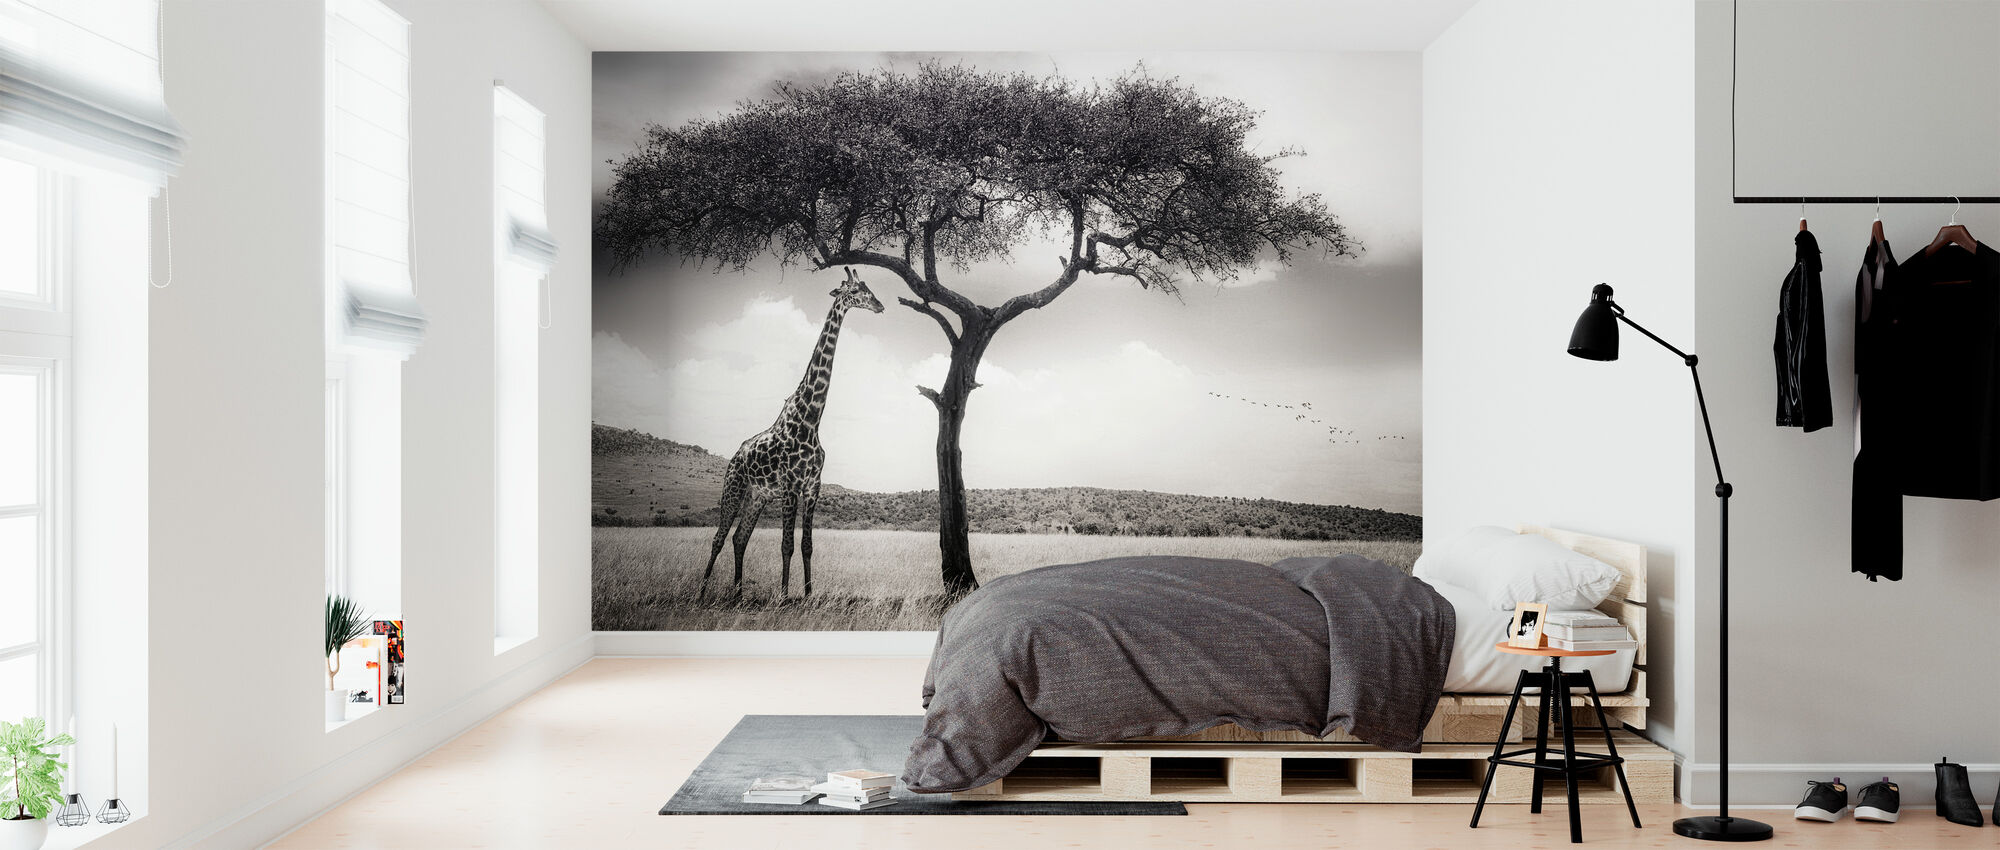 Under the African Sun - Wallpaper - Bedroom